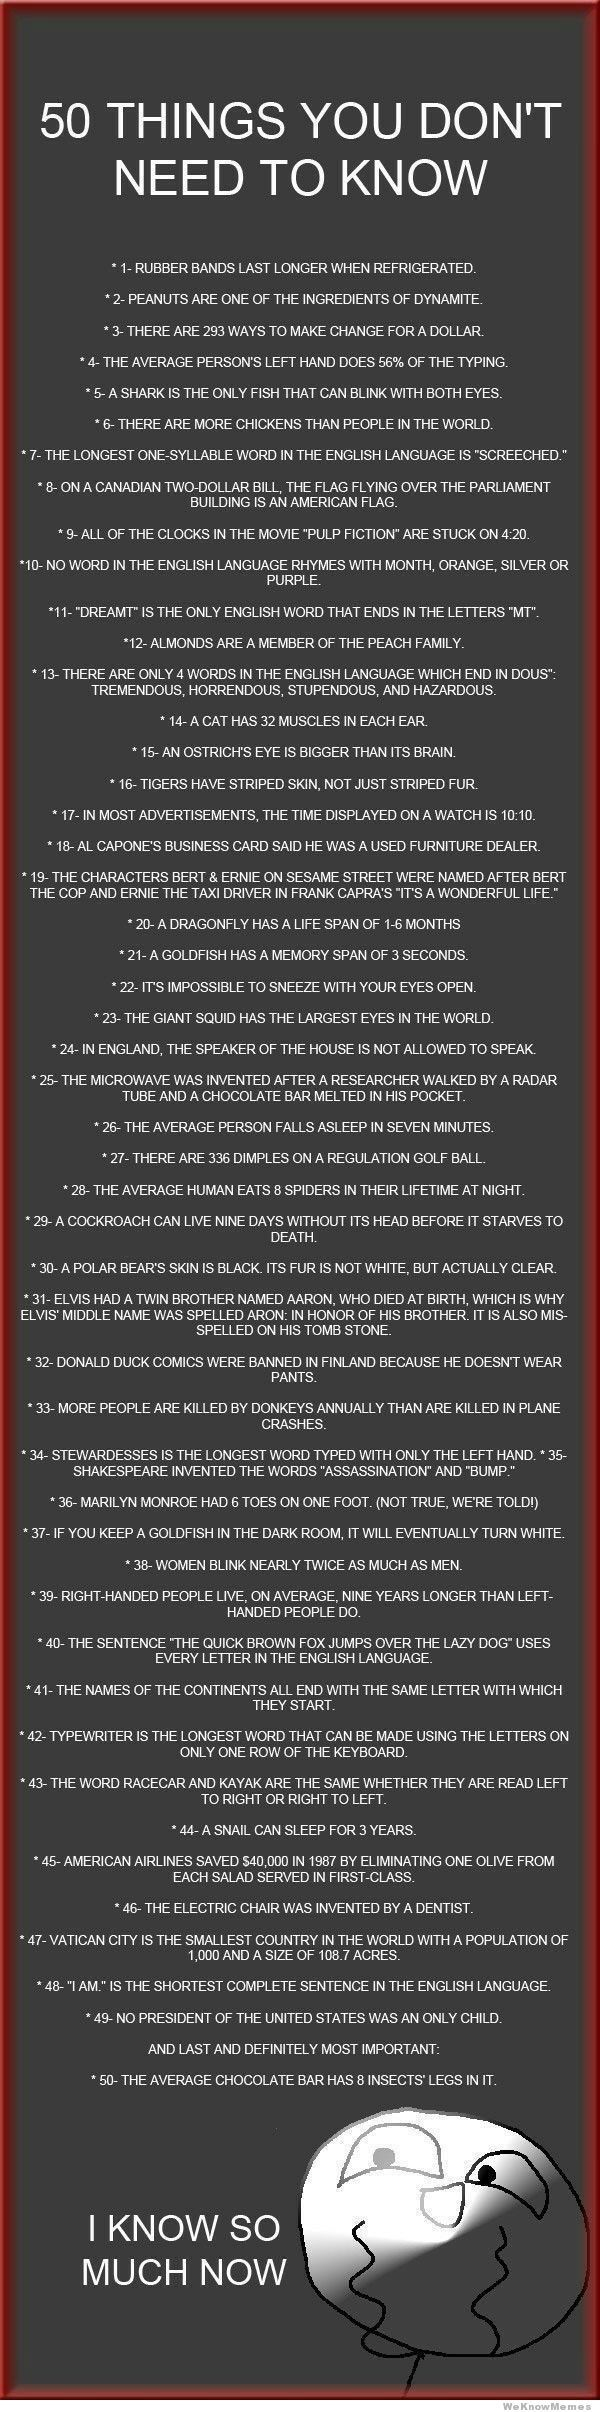 Some of these are really disturbing... But this is sooo worth reading!: Useless Facts, Stuff, Numbers, Funny, Chocolates Bar, Fun Facts, Interesting Facts, Random Facts, 50 Things